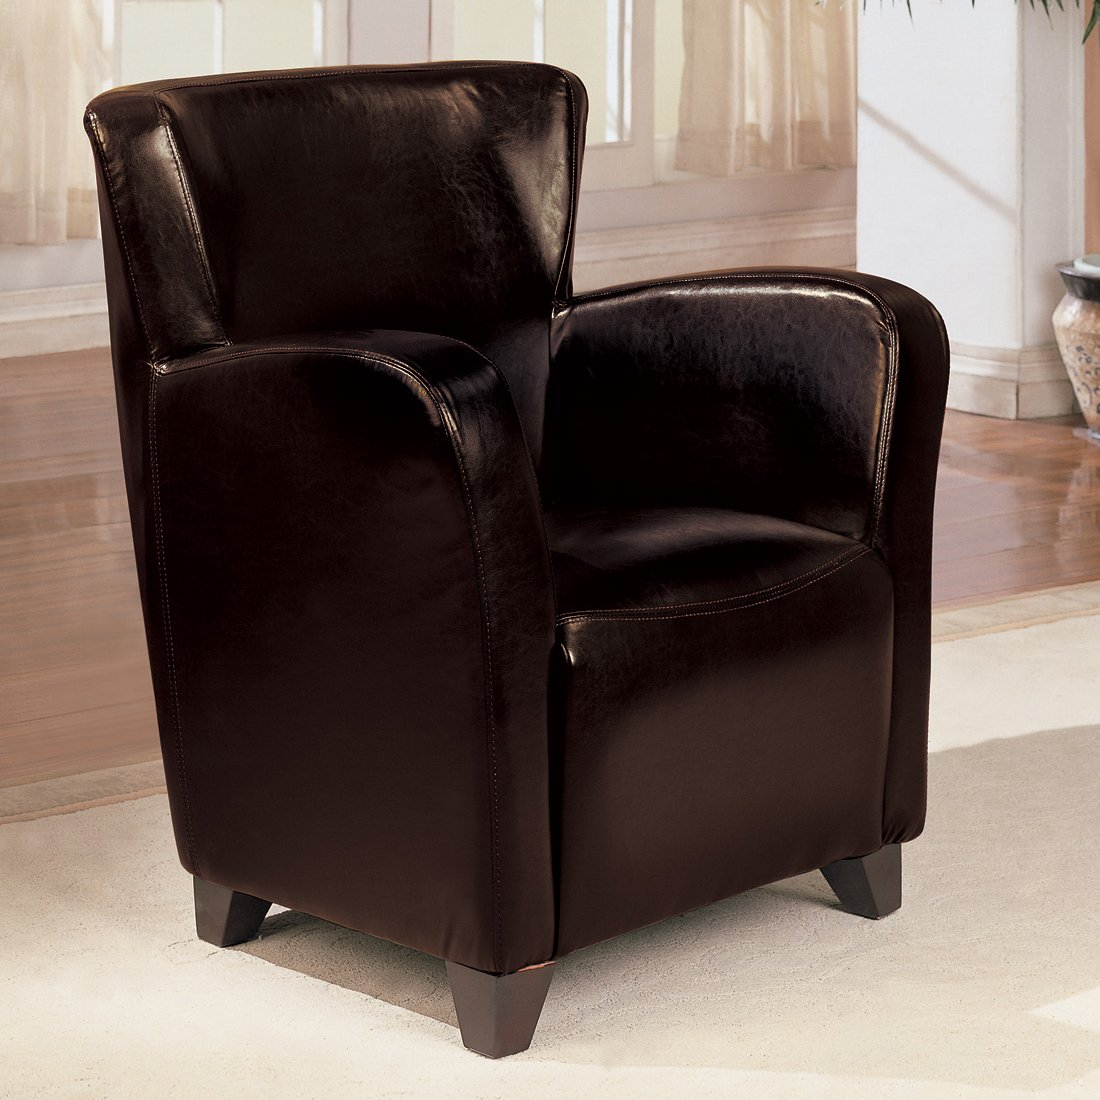 Accent chair with brown leather like vinyl upholstery by for Accent chair with brown leather sofa